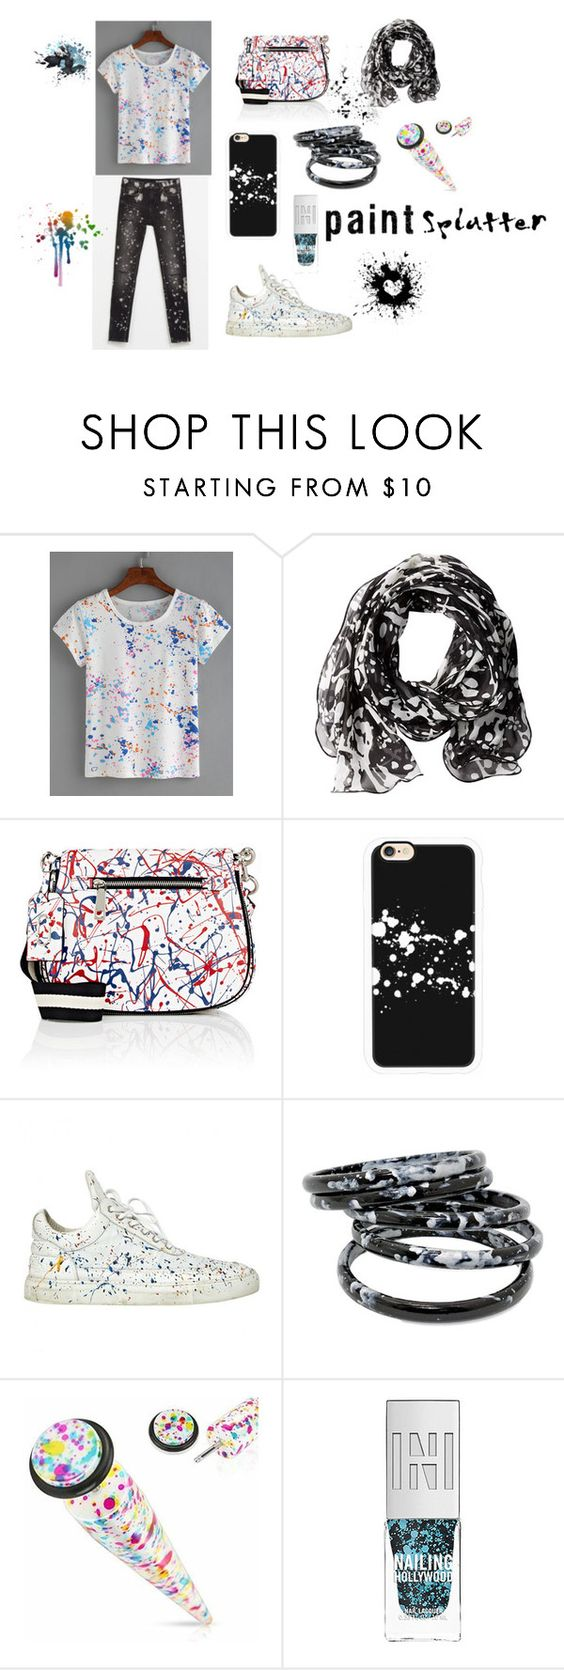 """""""Paint Splatter"""" by chicfashionista77 ❤ liked on Polyvore featuring Calvin Klein, Marc Jacobs, Casetify and Filling Pieces"""